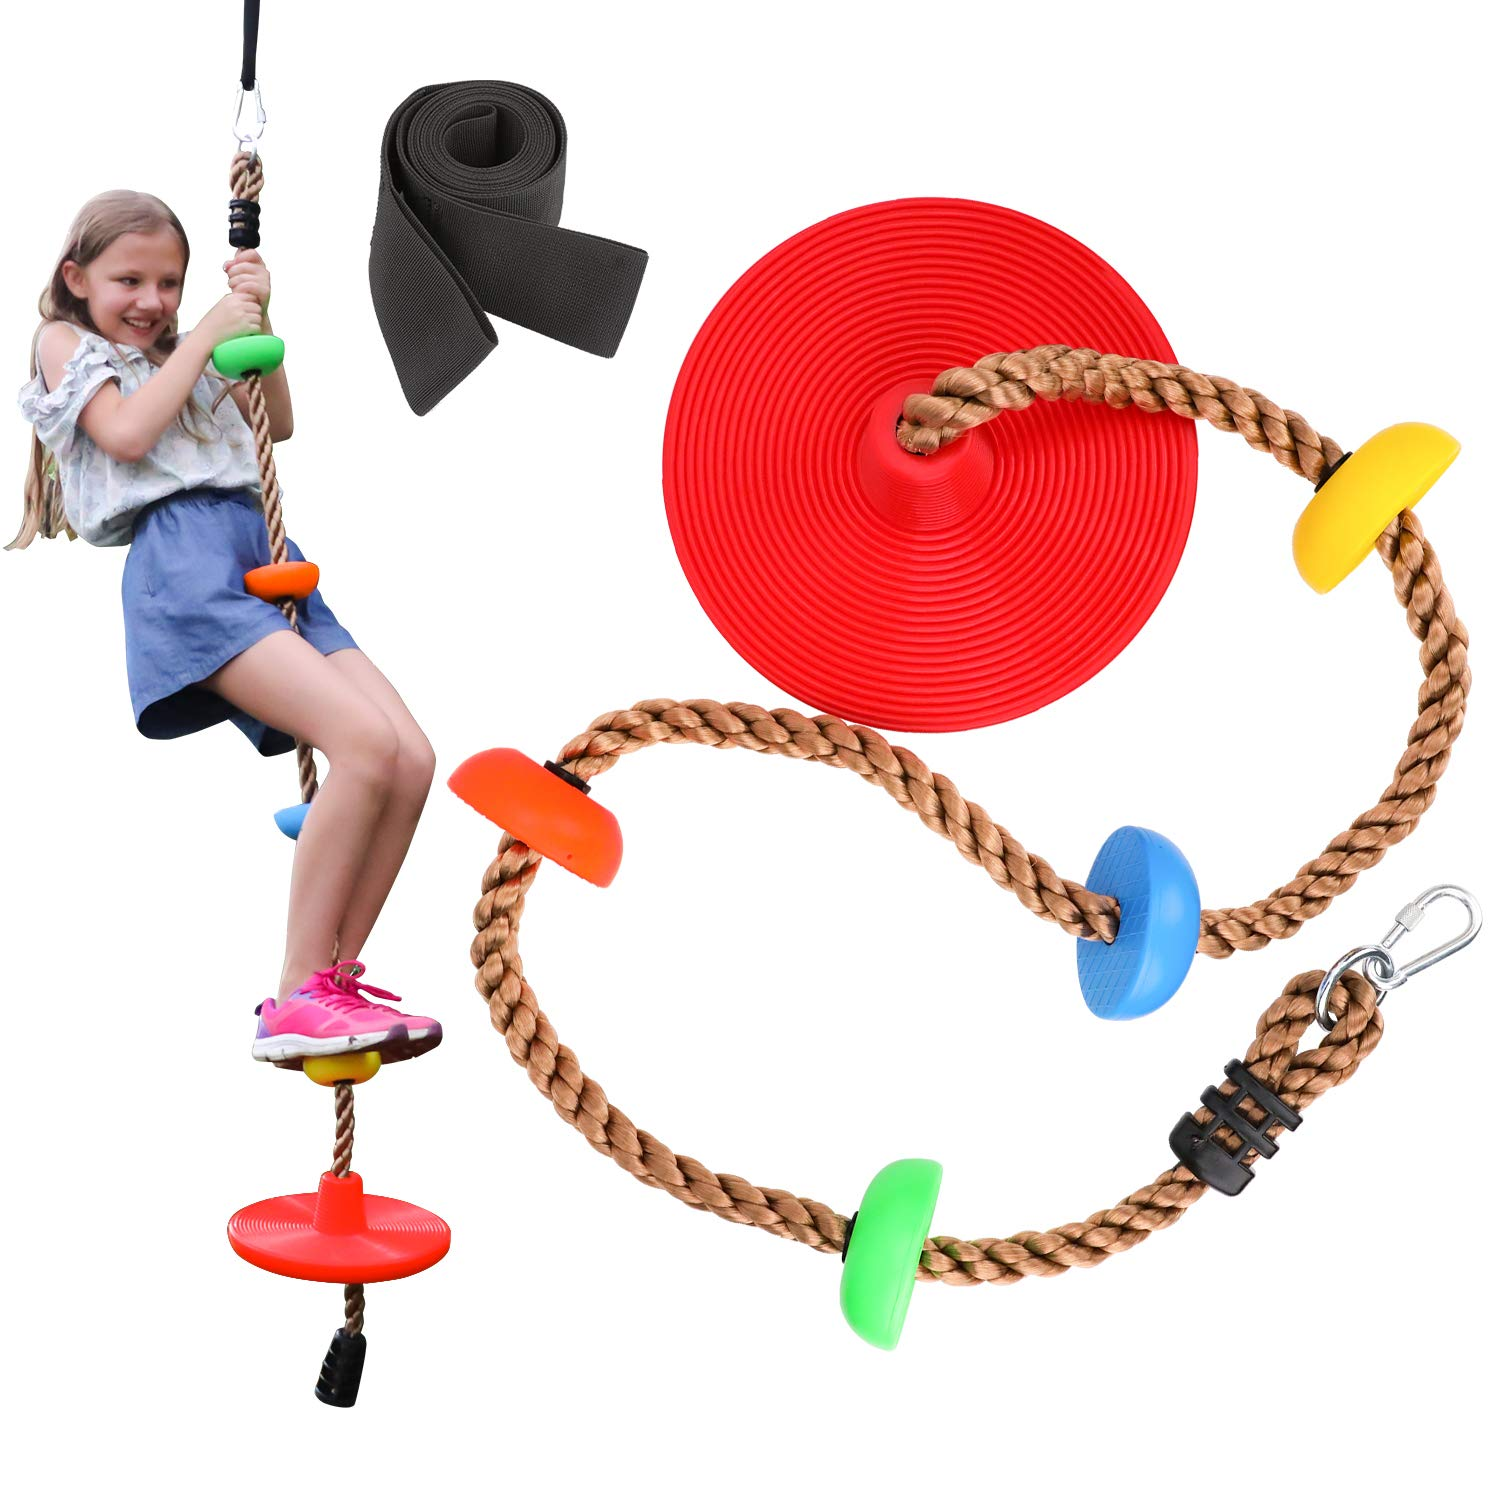 Sorbus Disc Swing Seat - Kids Monkey Rope Tree Zip Line Play Set Swings for Outdoor Backyard, Playground Fun, Over 6ft, Red